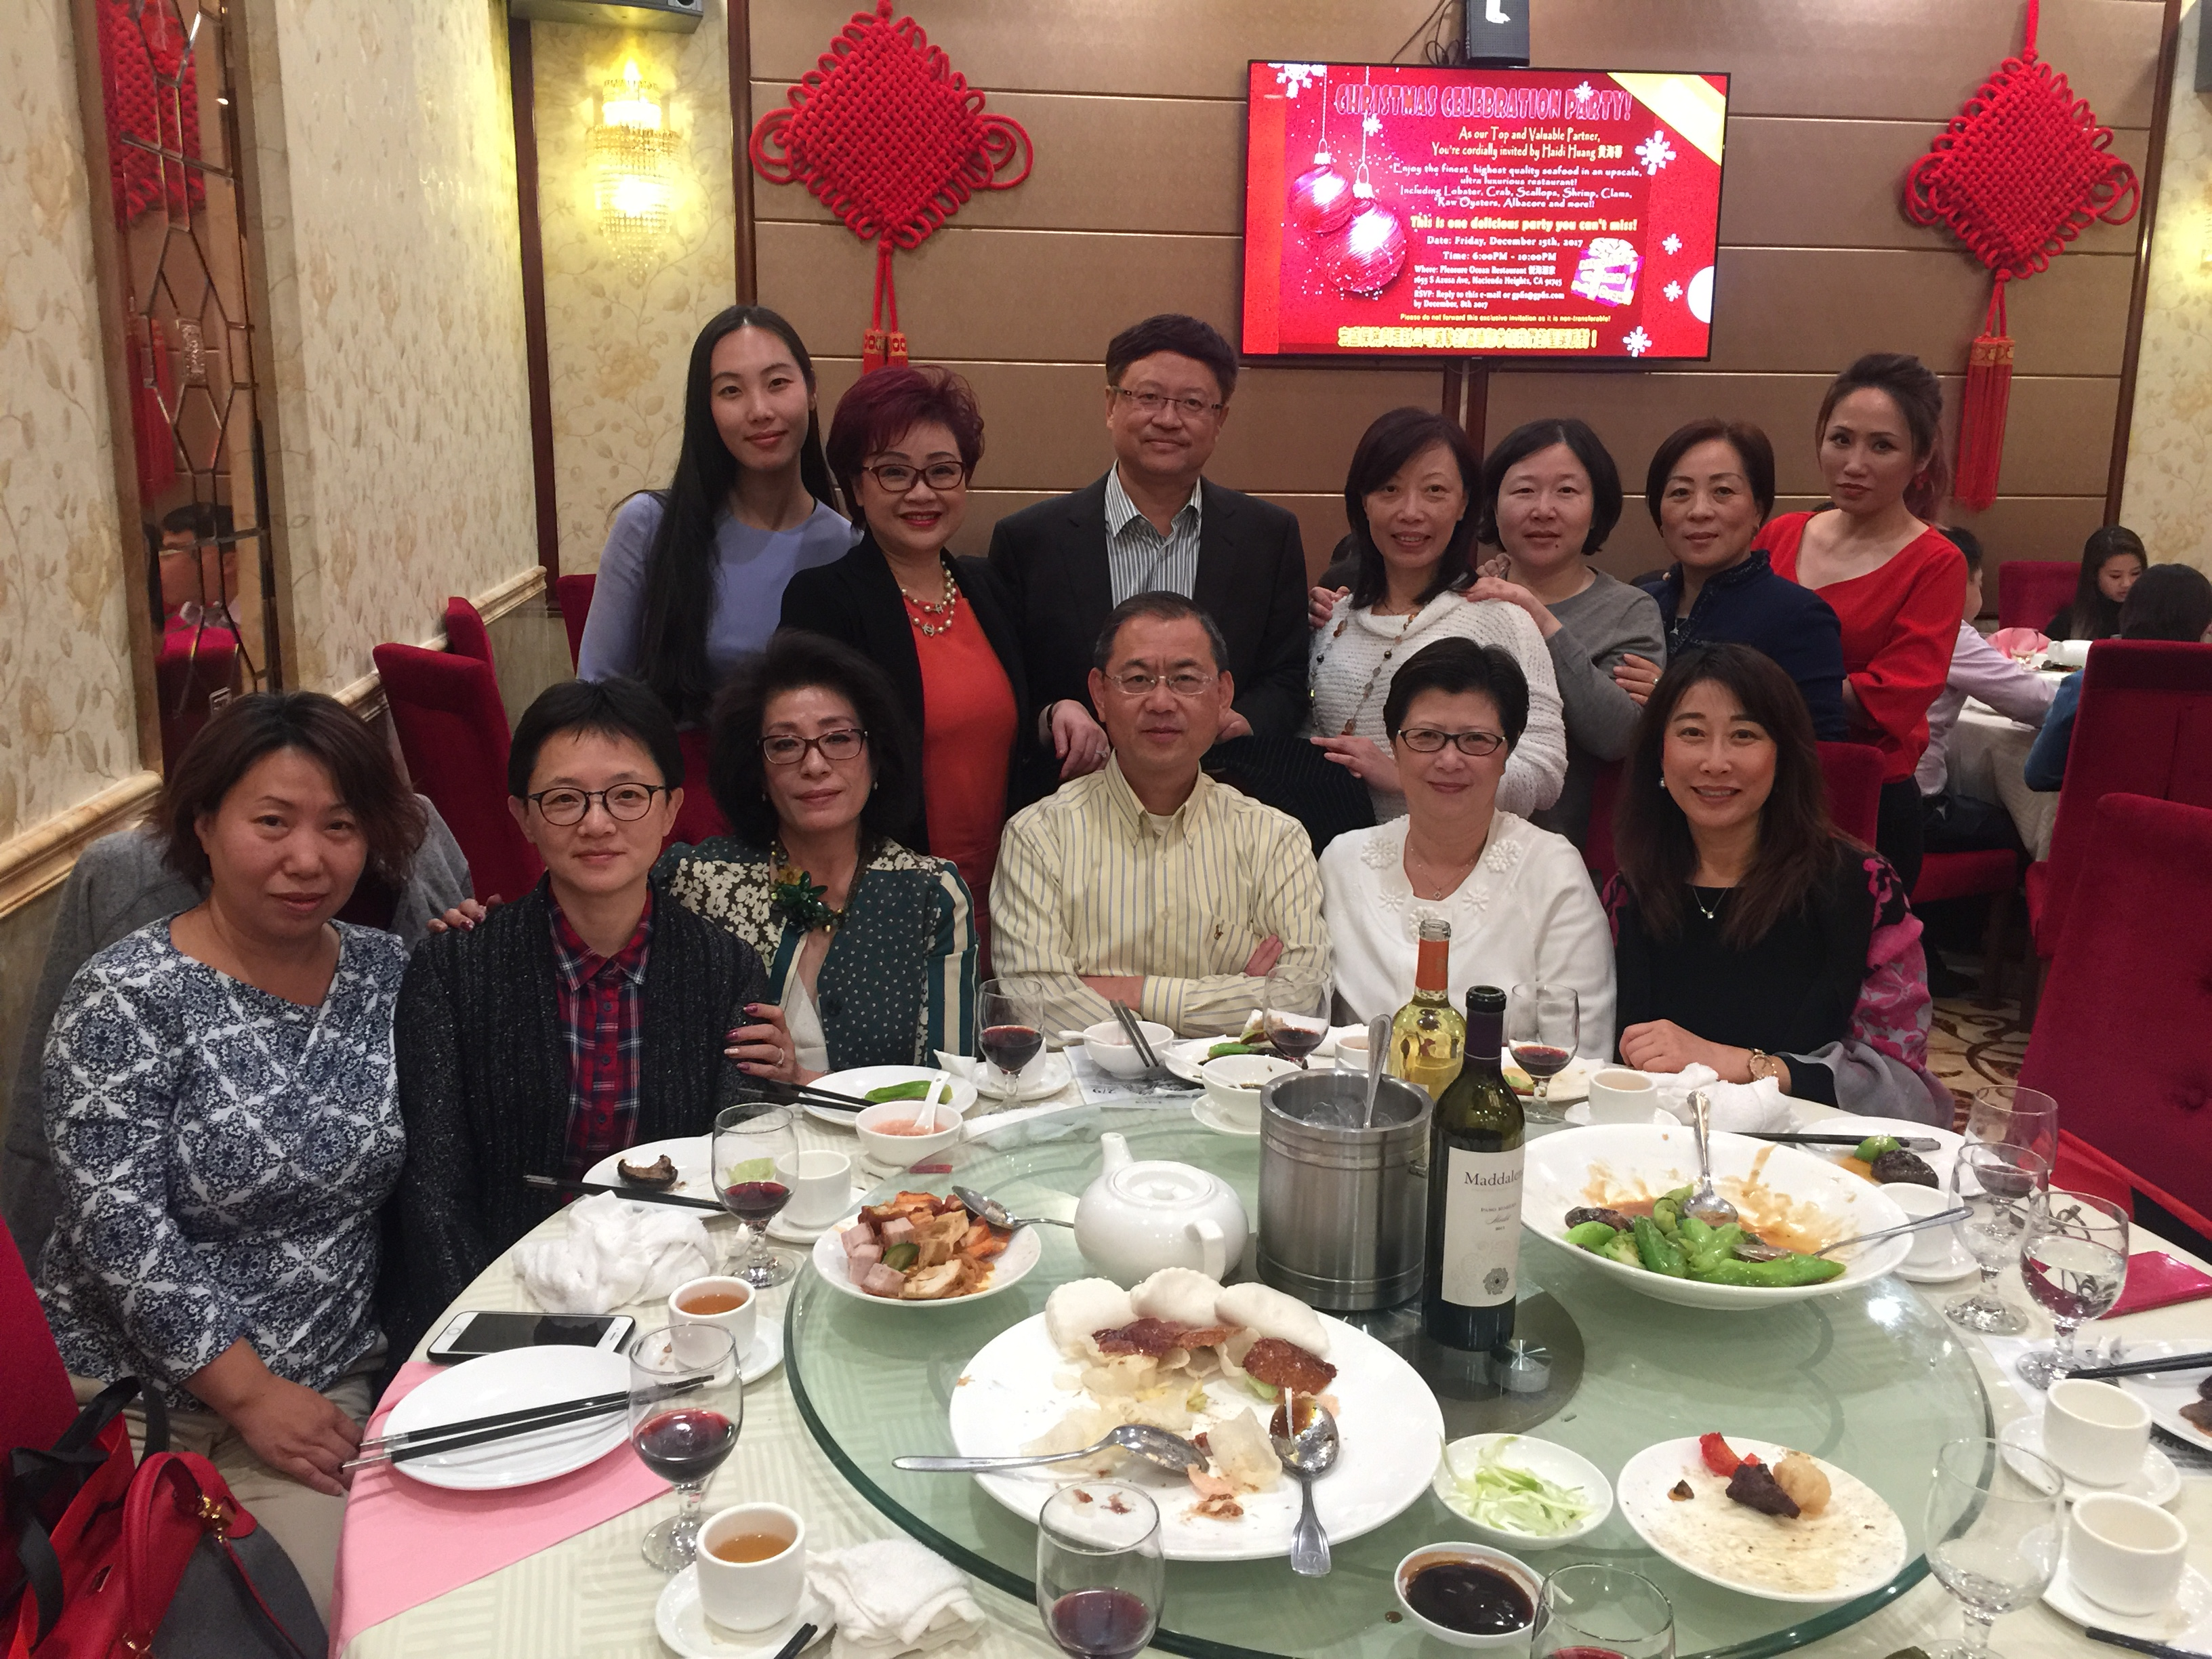 2017 Christmas Party 12/15/2017